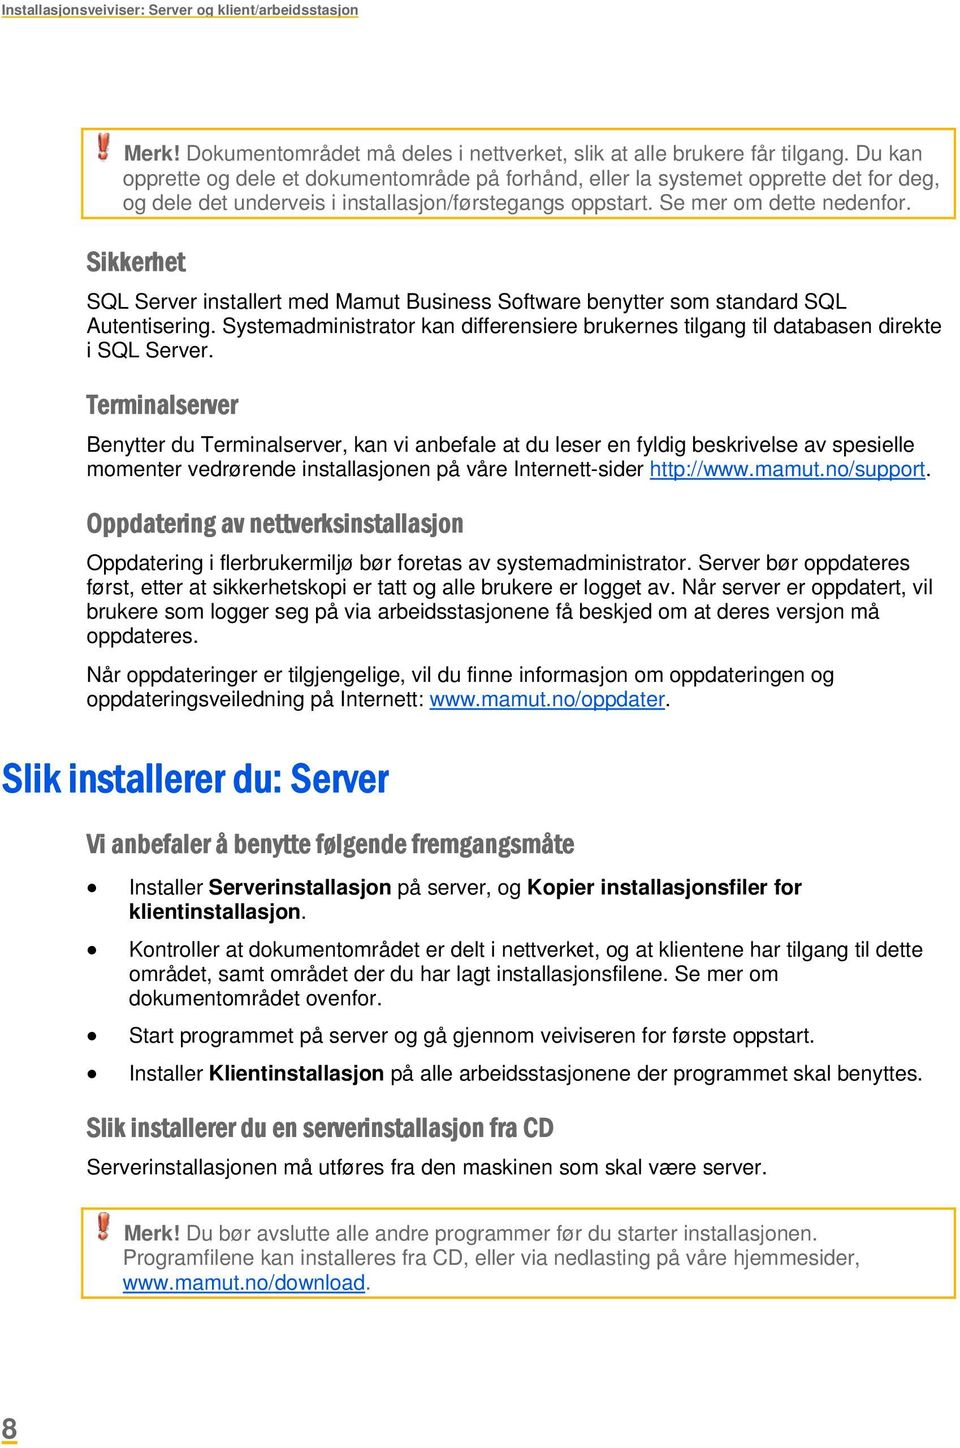 Sikkerhet SQL Server installert med Mamut Business Software benytter som standard SQL Autentisering. Systemadministrator kan differensiere brukernes tilgang til databasen direkte i SQL Server.